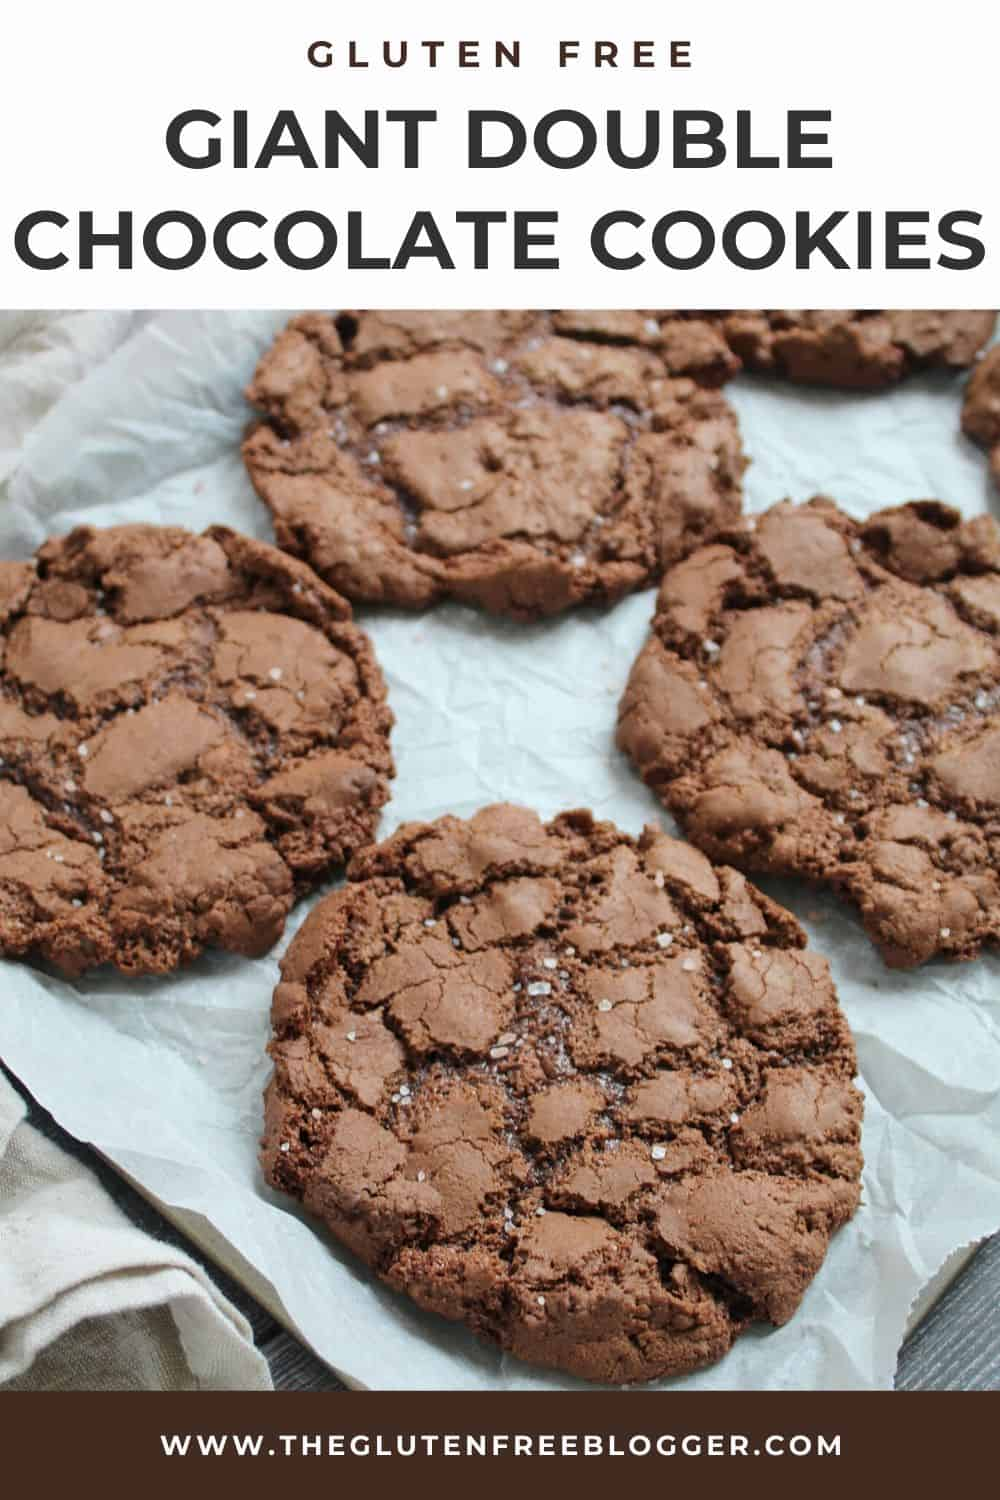 gluten free chocolate cookie recipe - double chocolate giant cookies